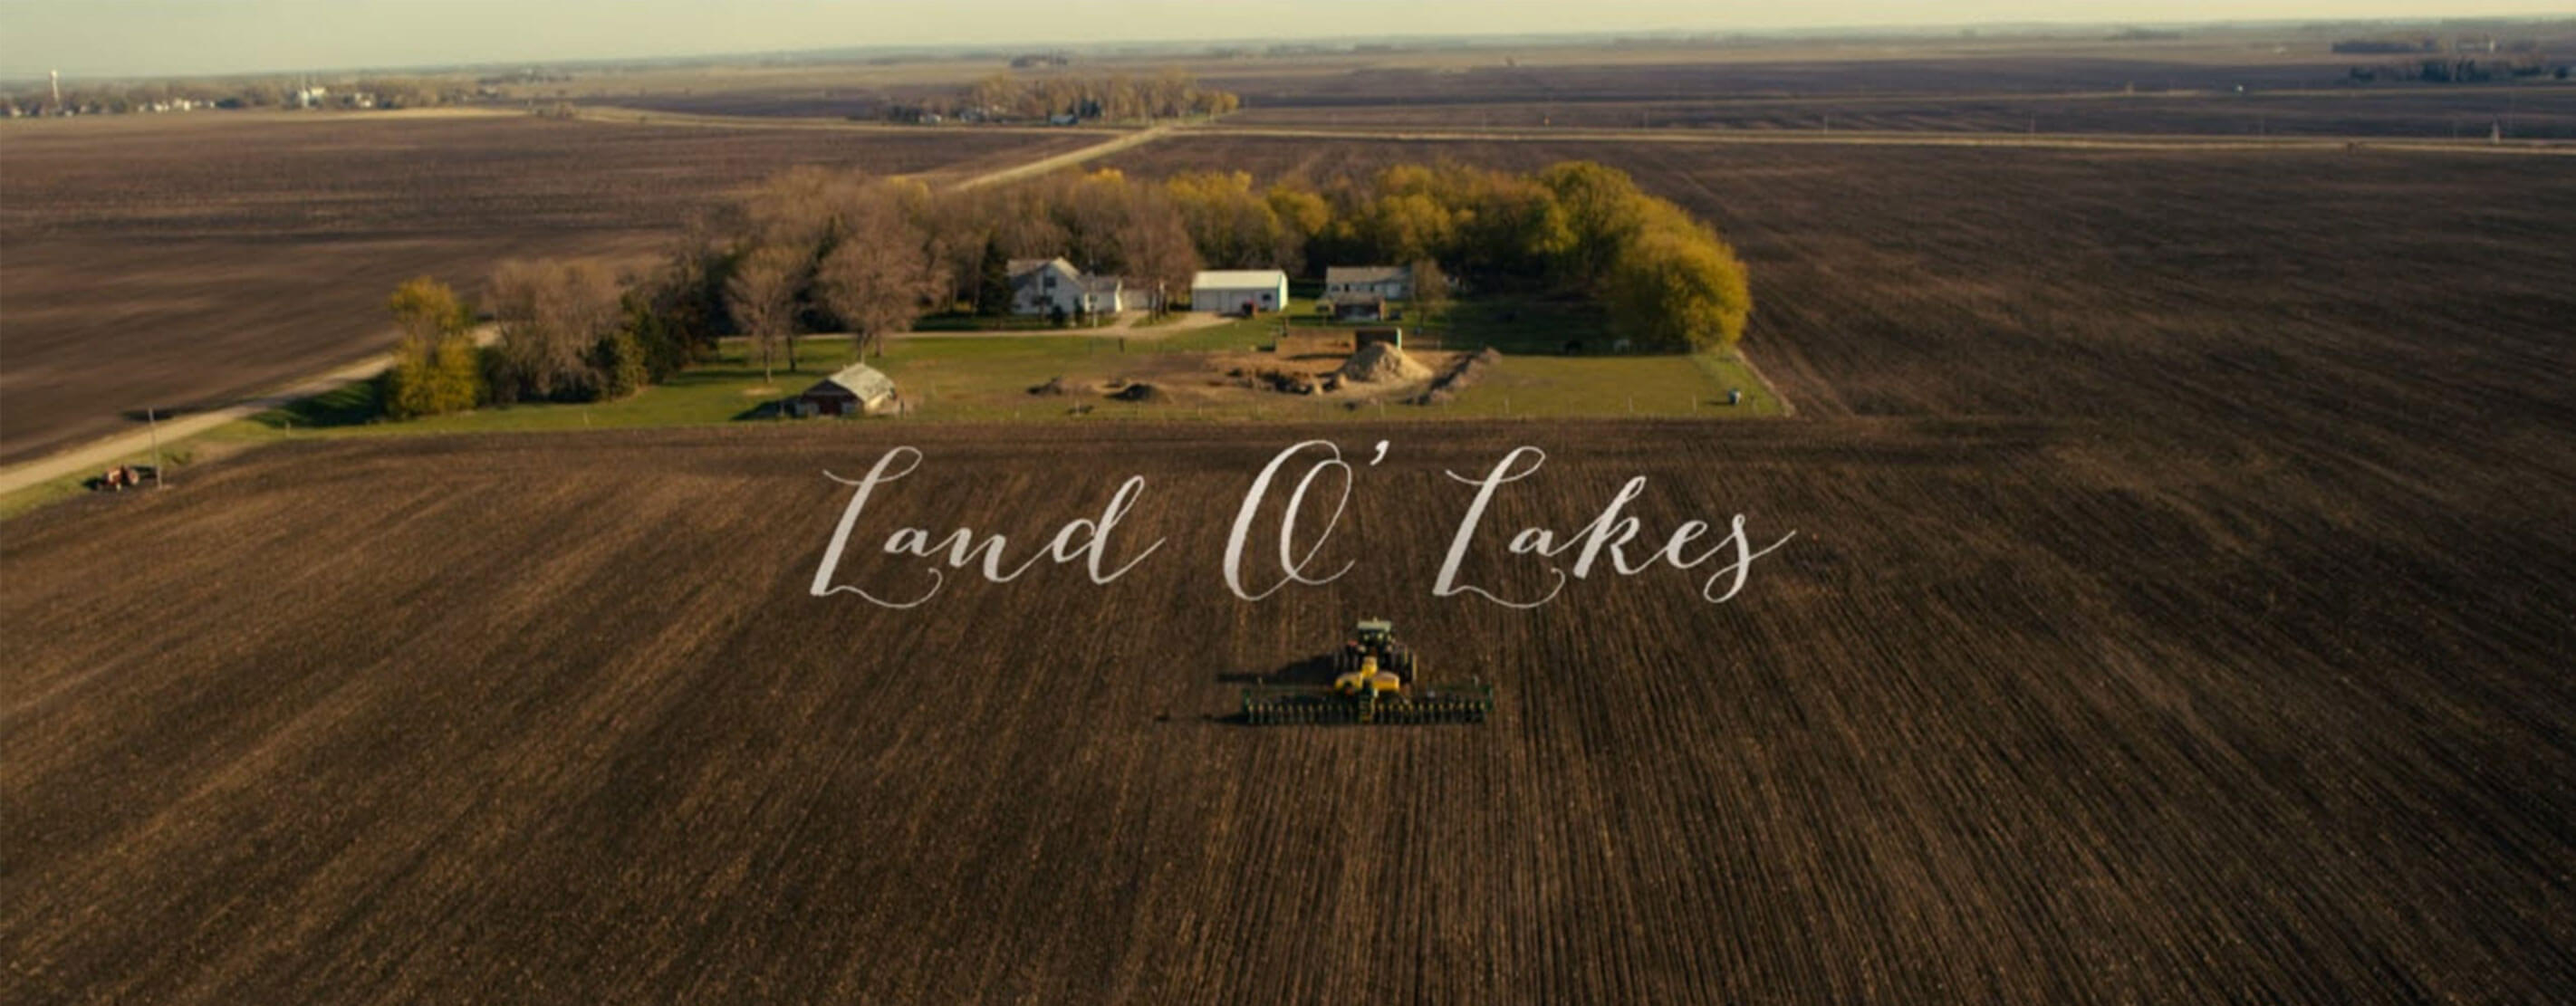 An Aerial View Of A Large Farm With The Text Land O